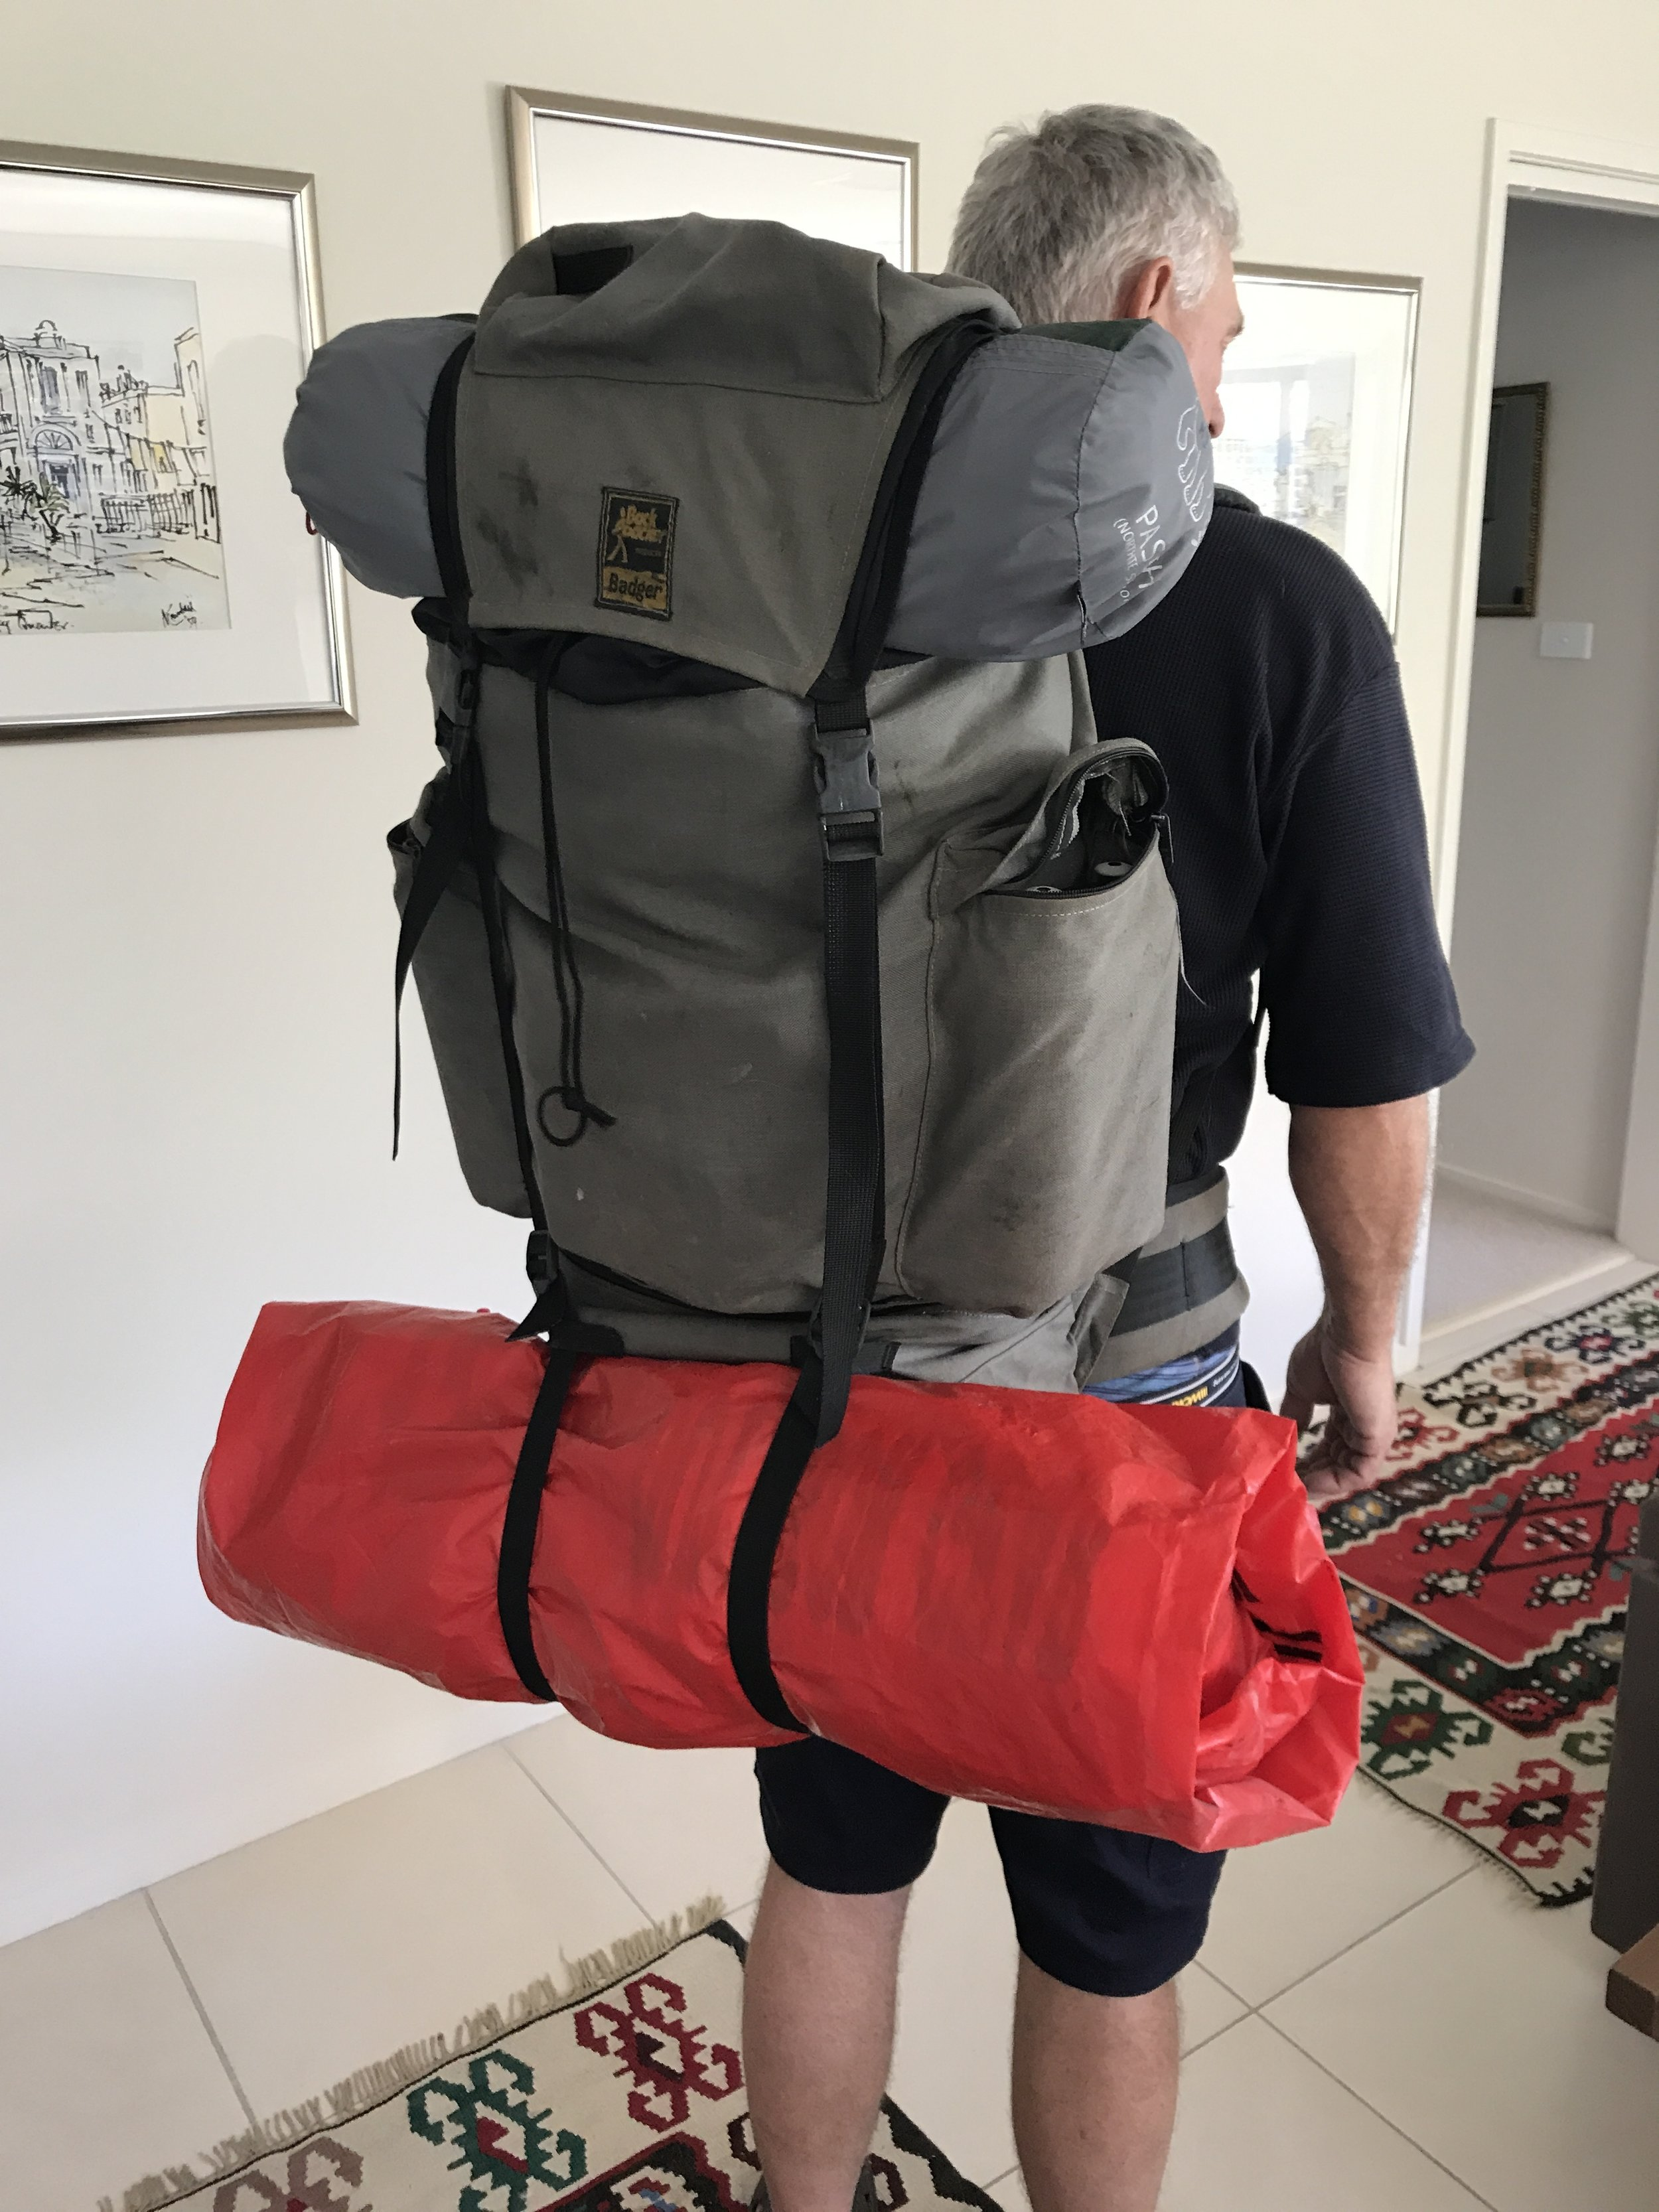 Mr PetMan tries out his 22 kg pack